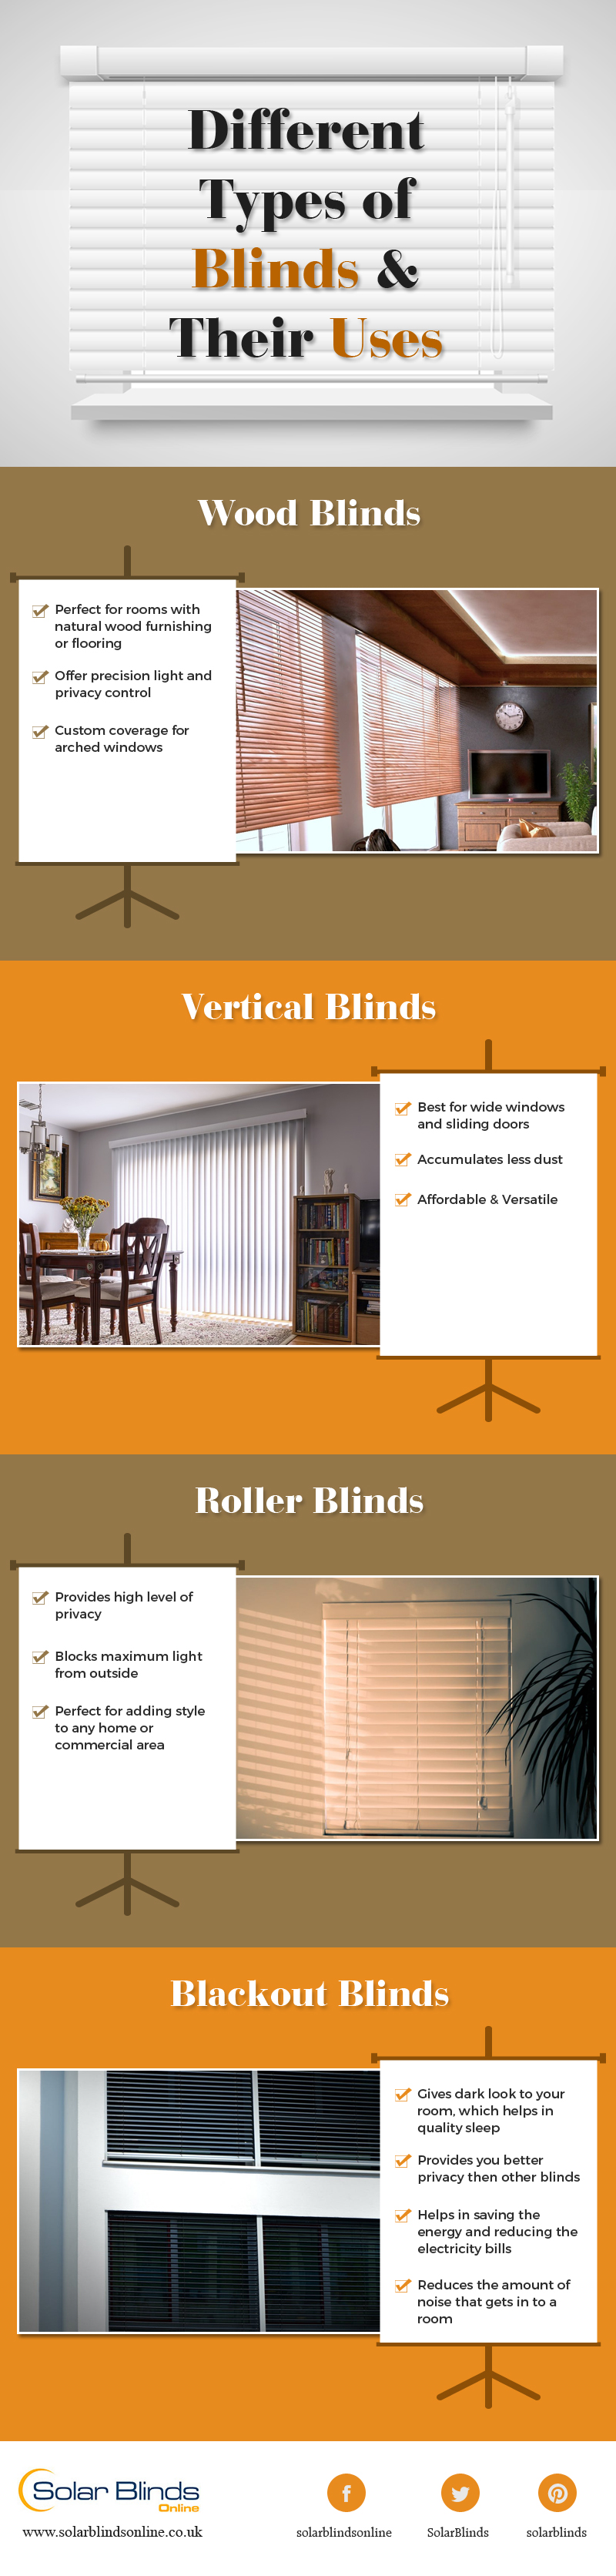 Different Types of Blinds and Their Uses [Infographic]